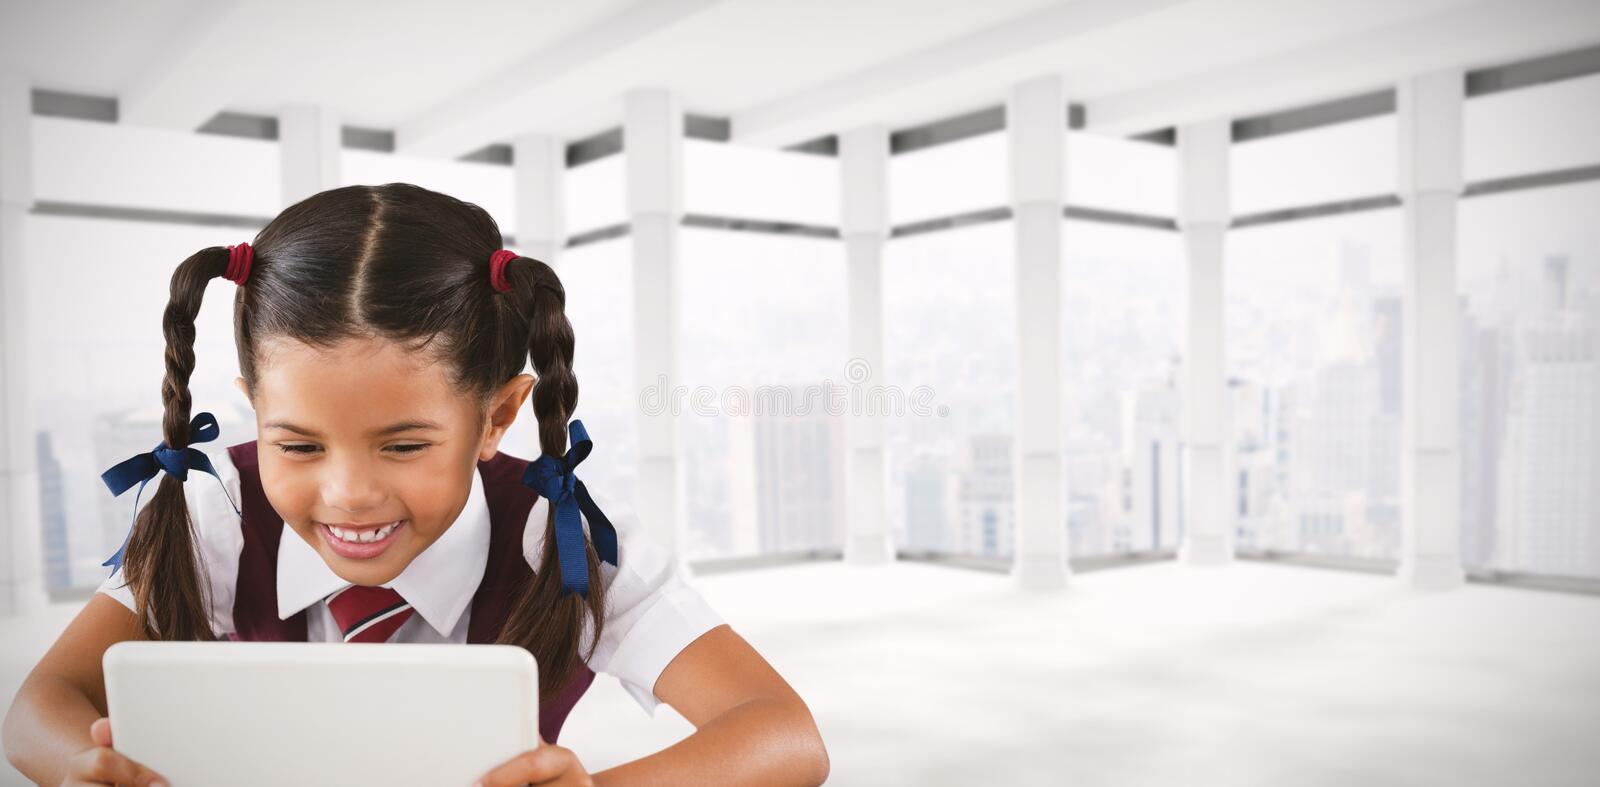 Composite image of schoolgirl using digital tablet at desk stock image